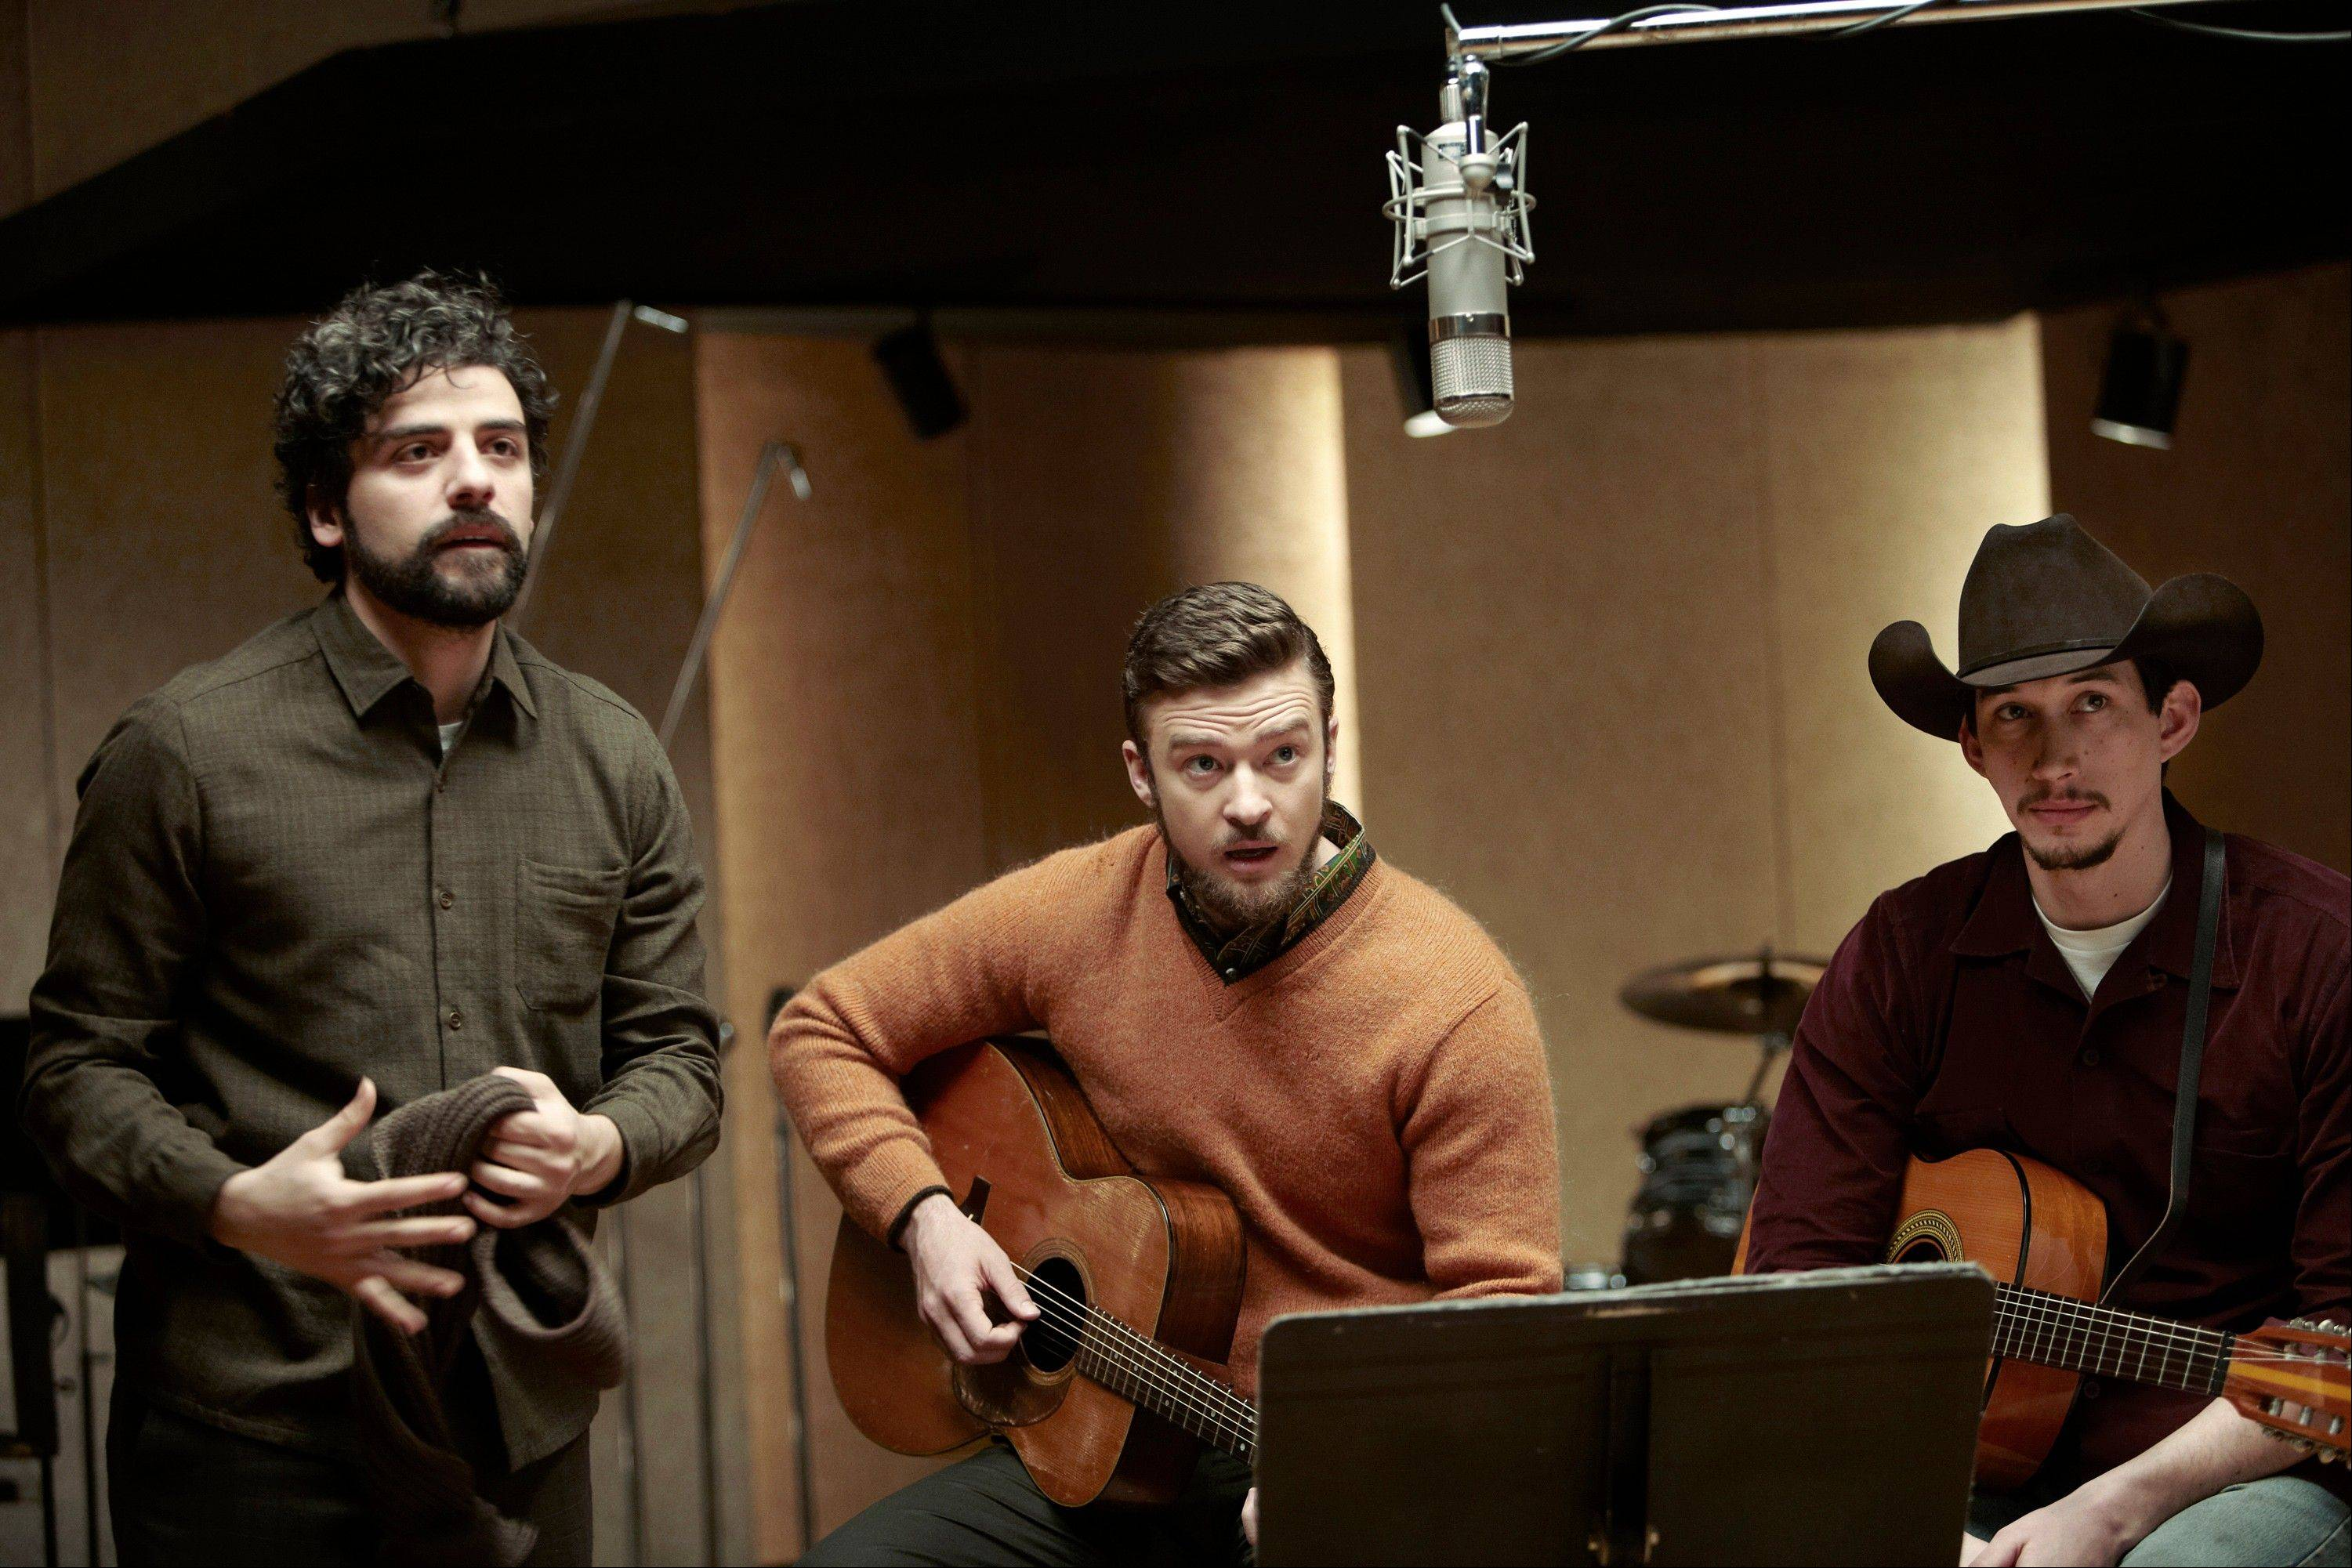 Oscar Isaac, left, Justin Timberlake and Adam Driver star in �Inside Llewyn Davis.� In the Coen brothers film, Timberlake plays a supporting role as a cheery, sweater-wearing 1960s folk musician. But he also collaborated with producer T Bone Burnett on the movie�s memorable period songs and helped shape the film�s most unforgettable and comic tune, �Please Mr. Kennedy.�